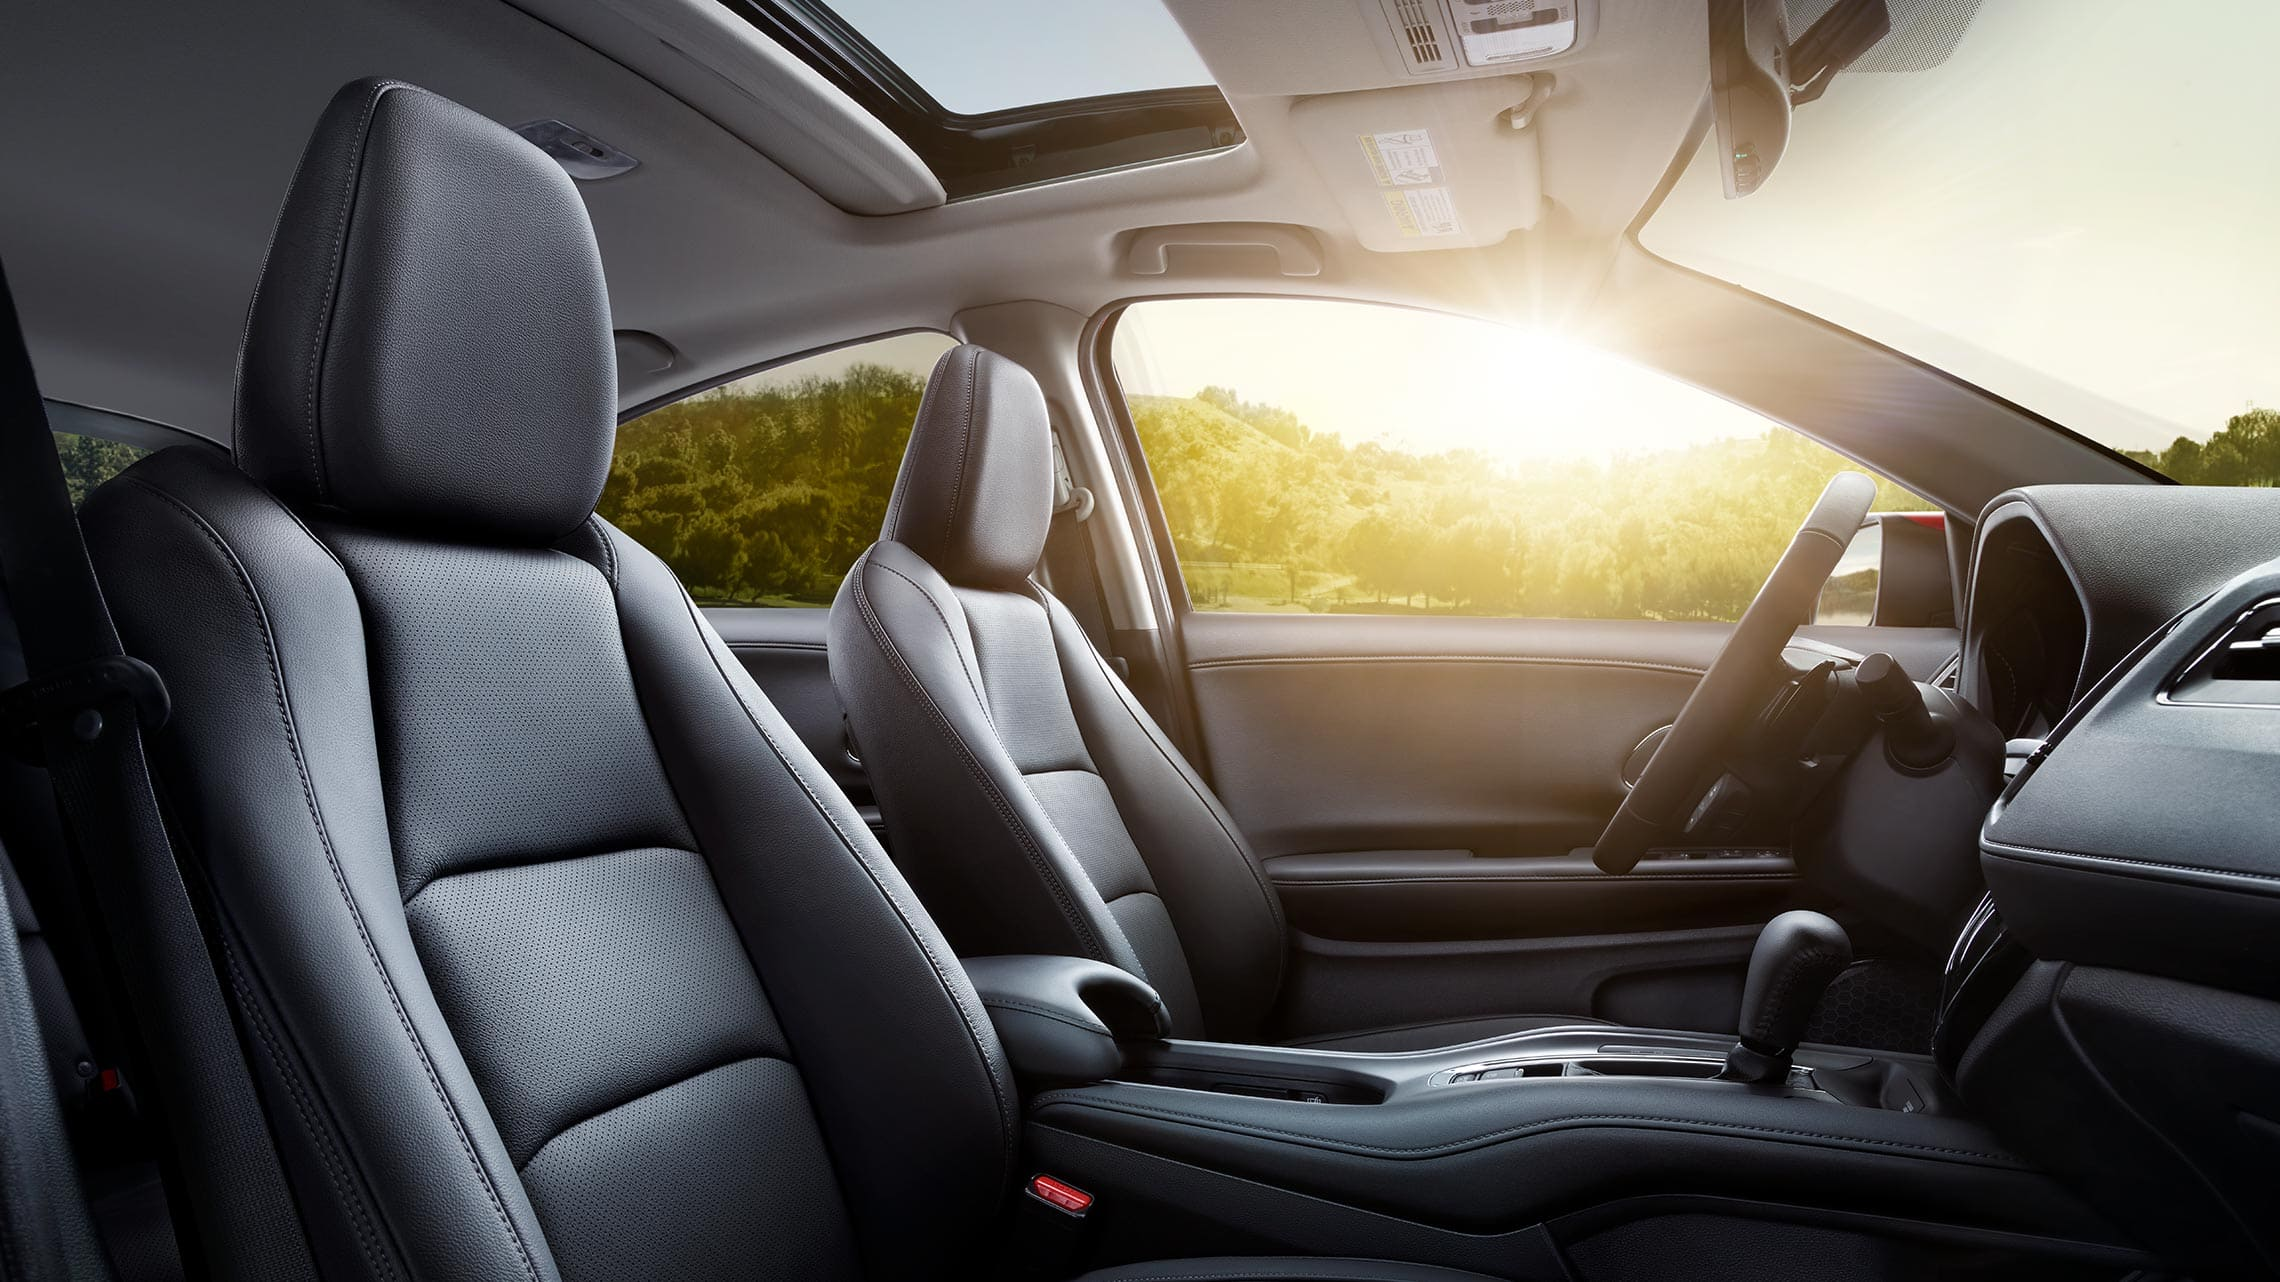 Interior passenger's side view of the 2019 Honda HR-V Touring seats in Black Leather.